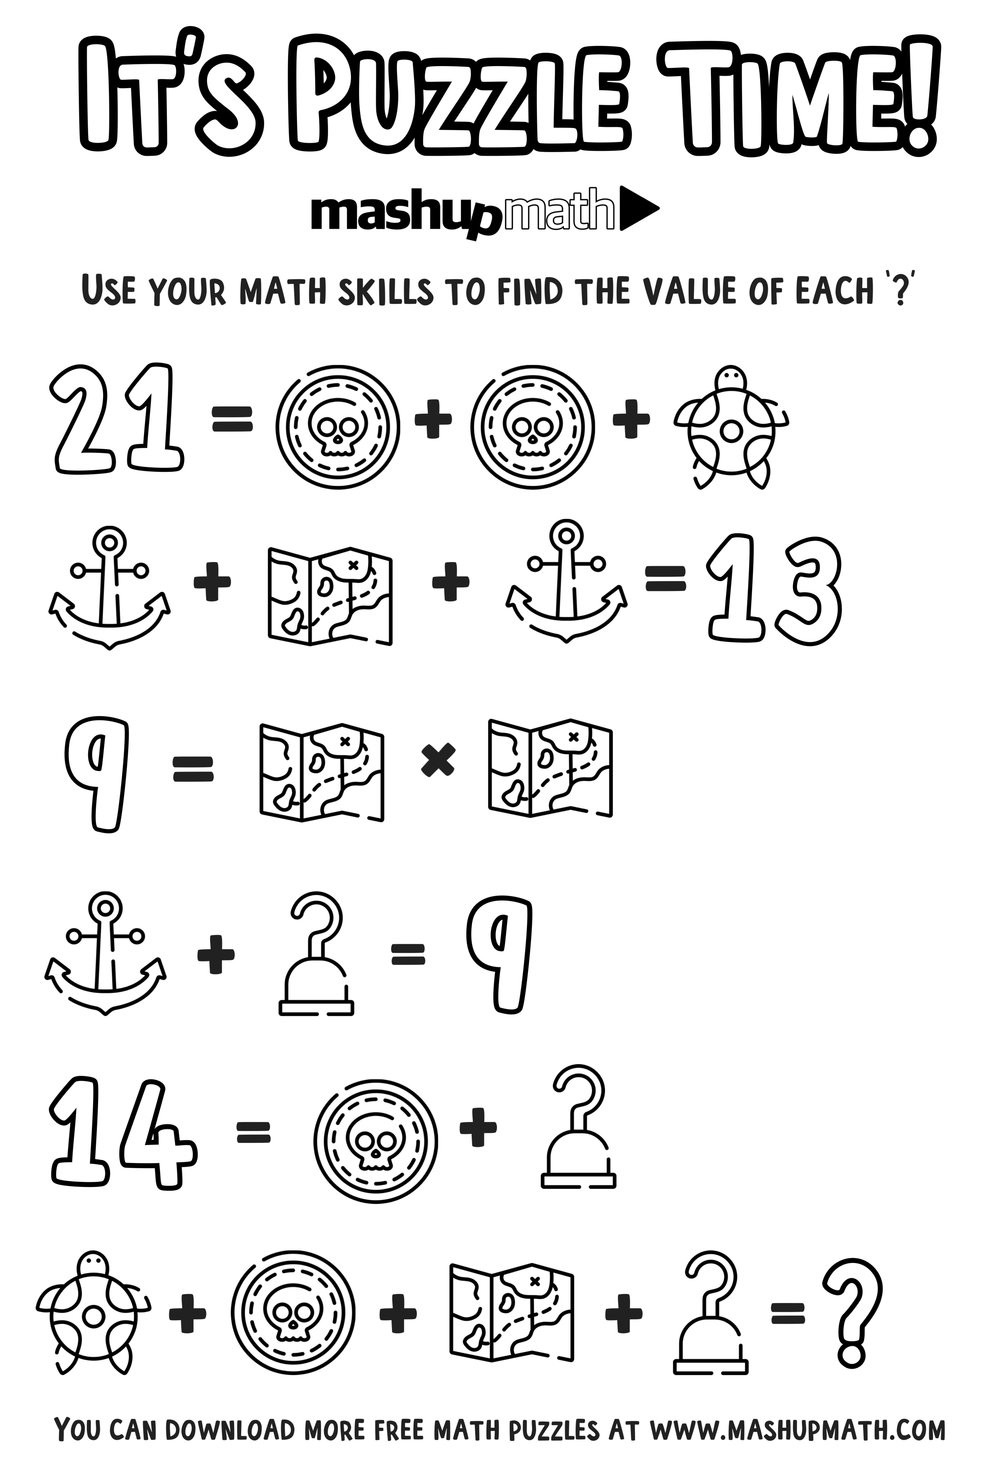 Middle School Math Puzzles Printable Worksheet Piratemath Printable Math Coloring Puzzles Free